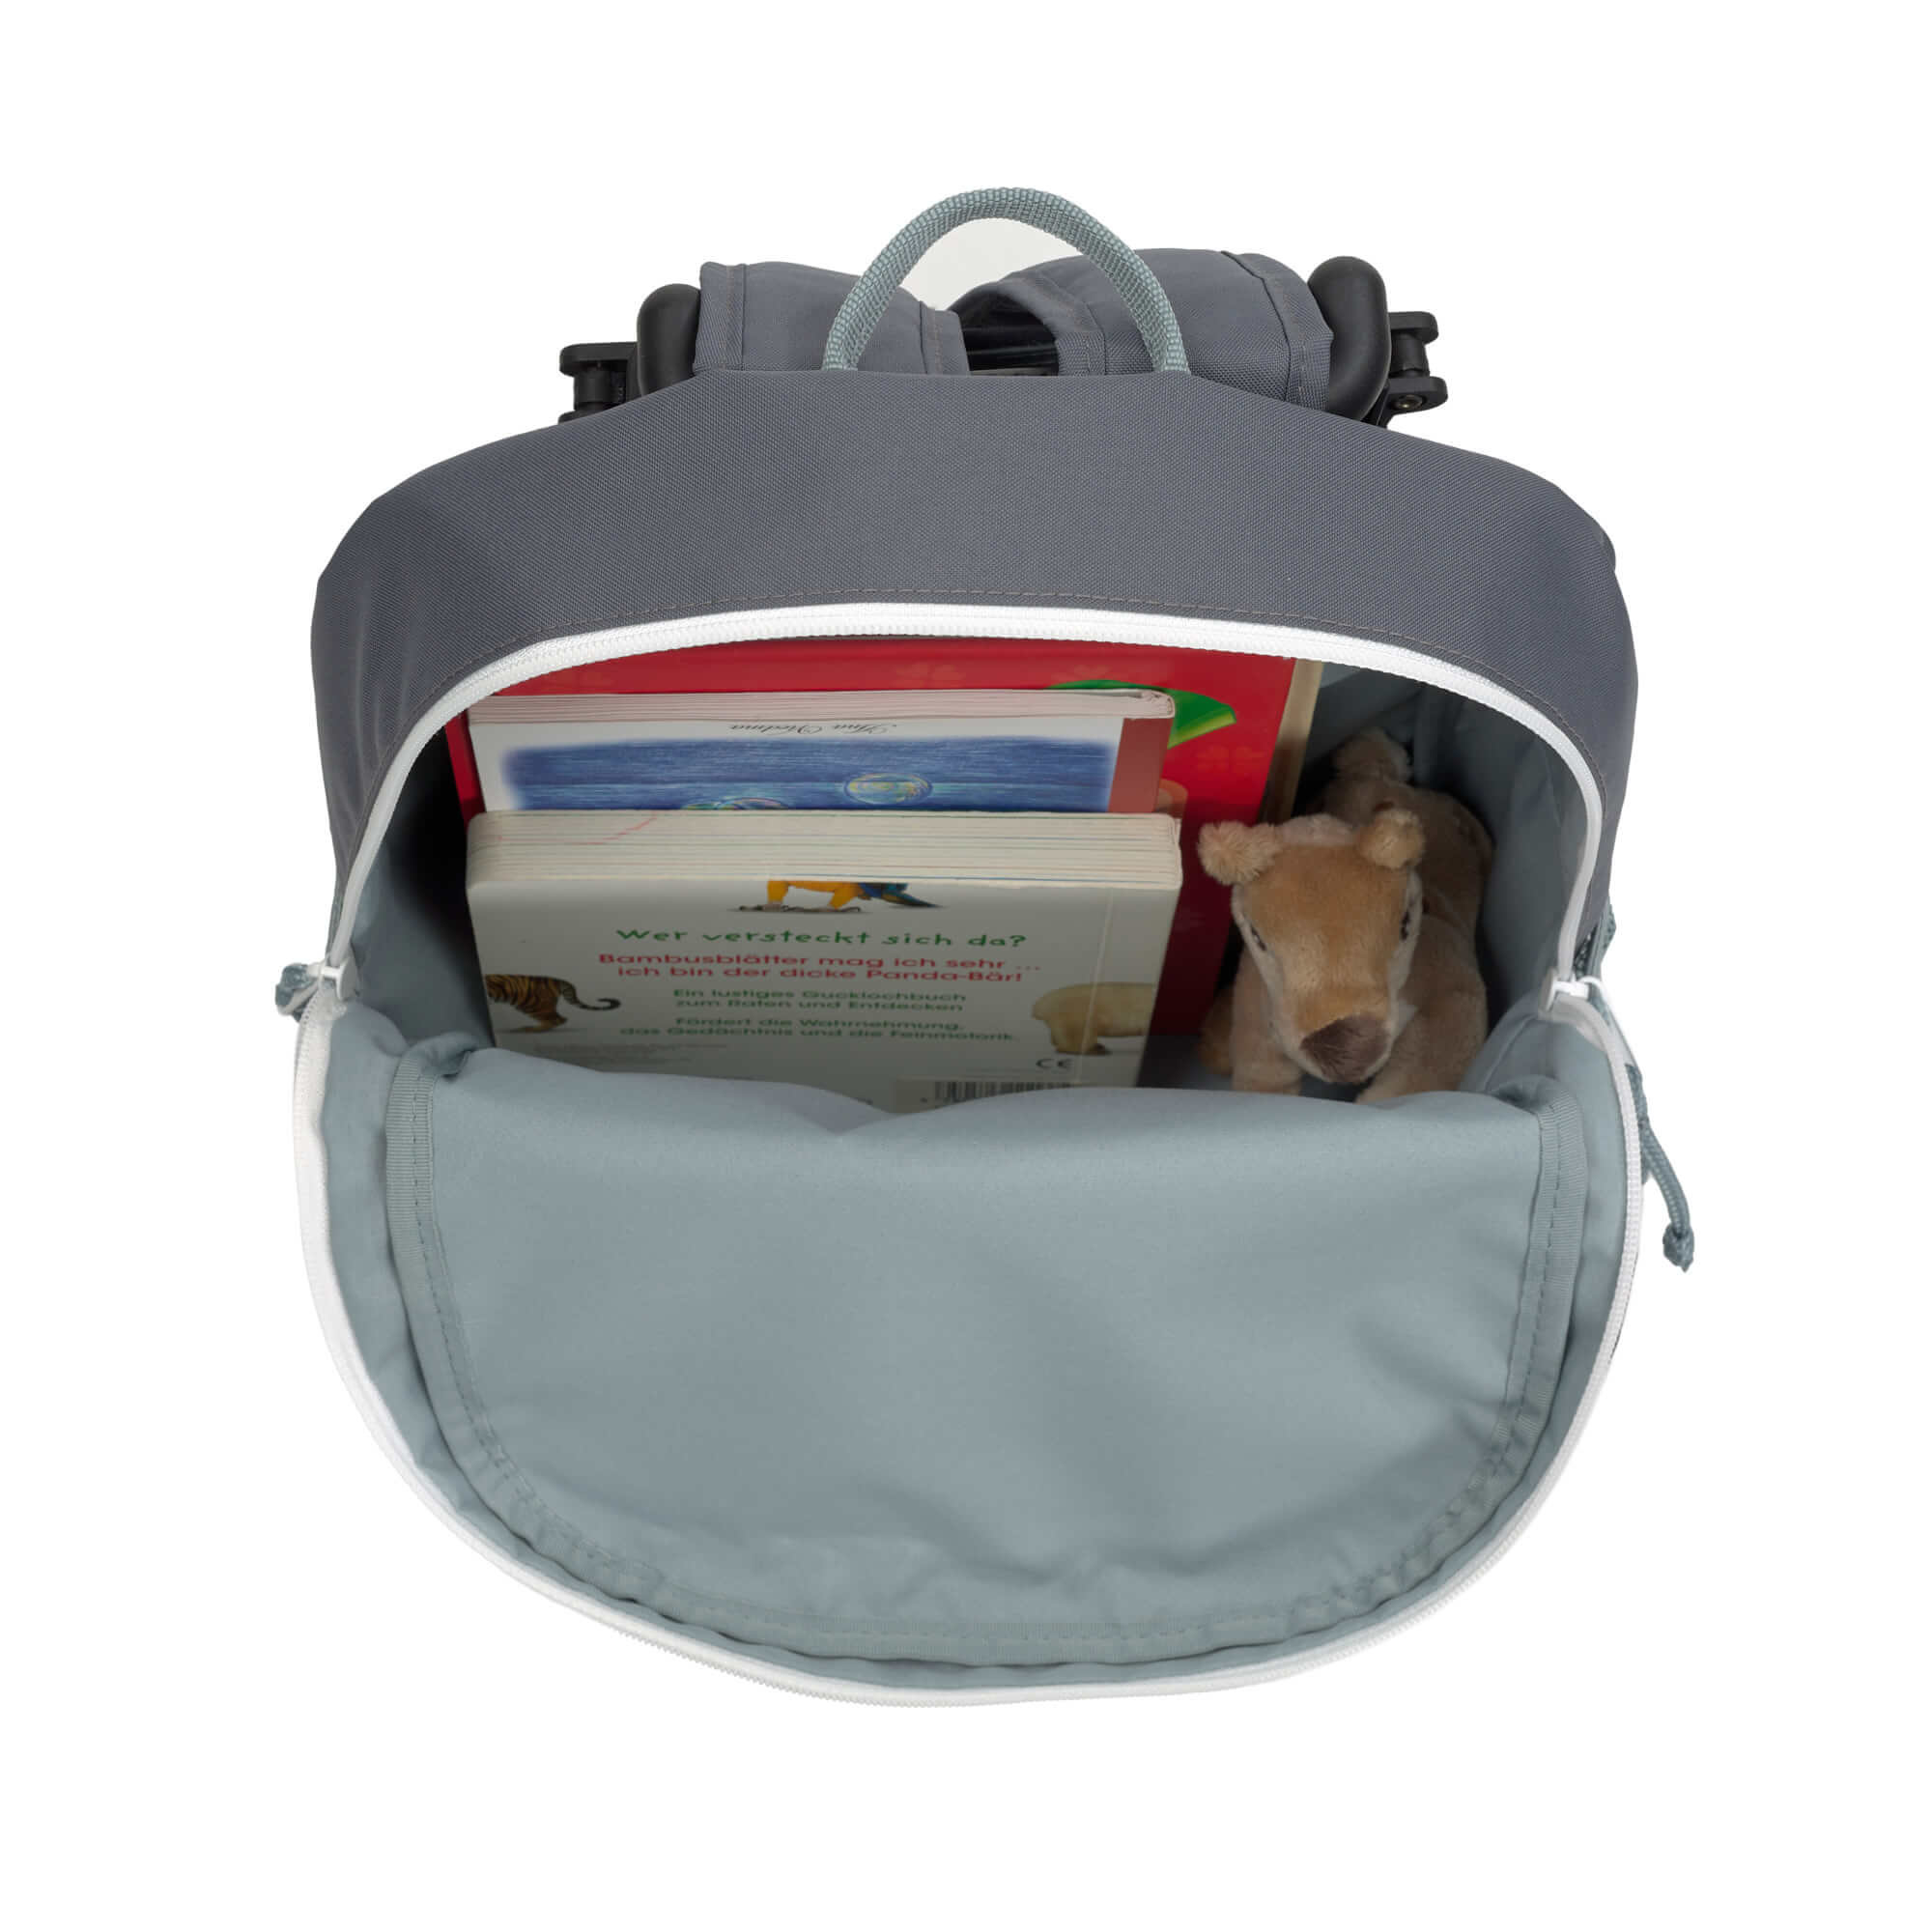 Lässig Lässig Tiny Backpack Trolley About Friends Racoon